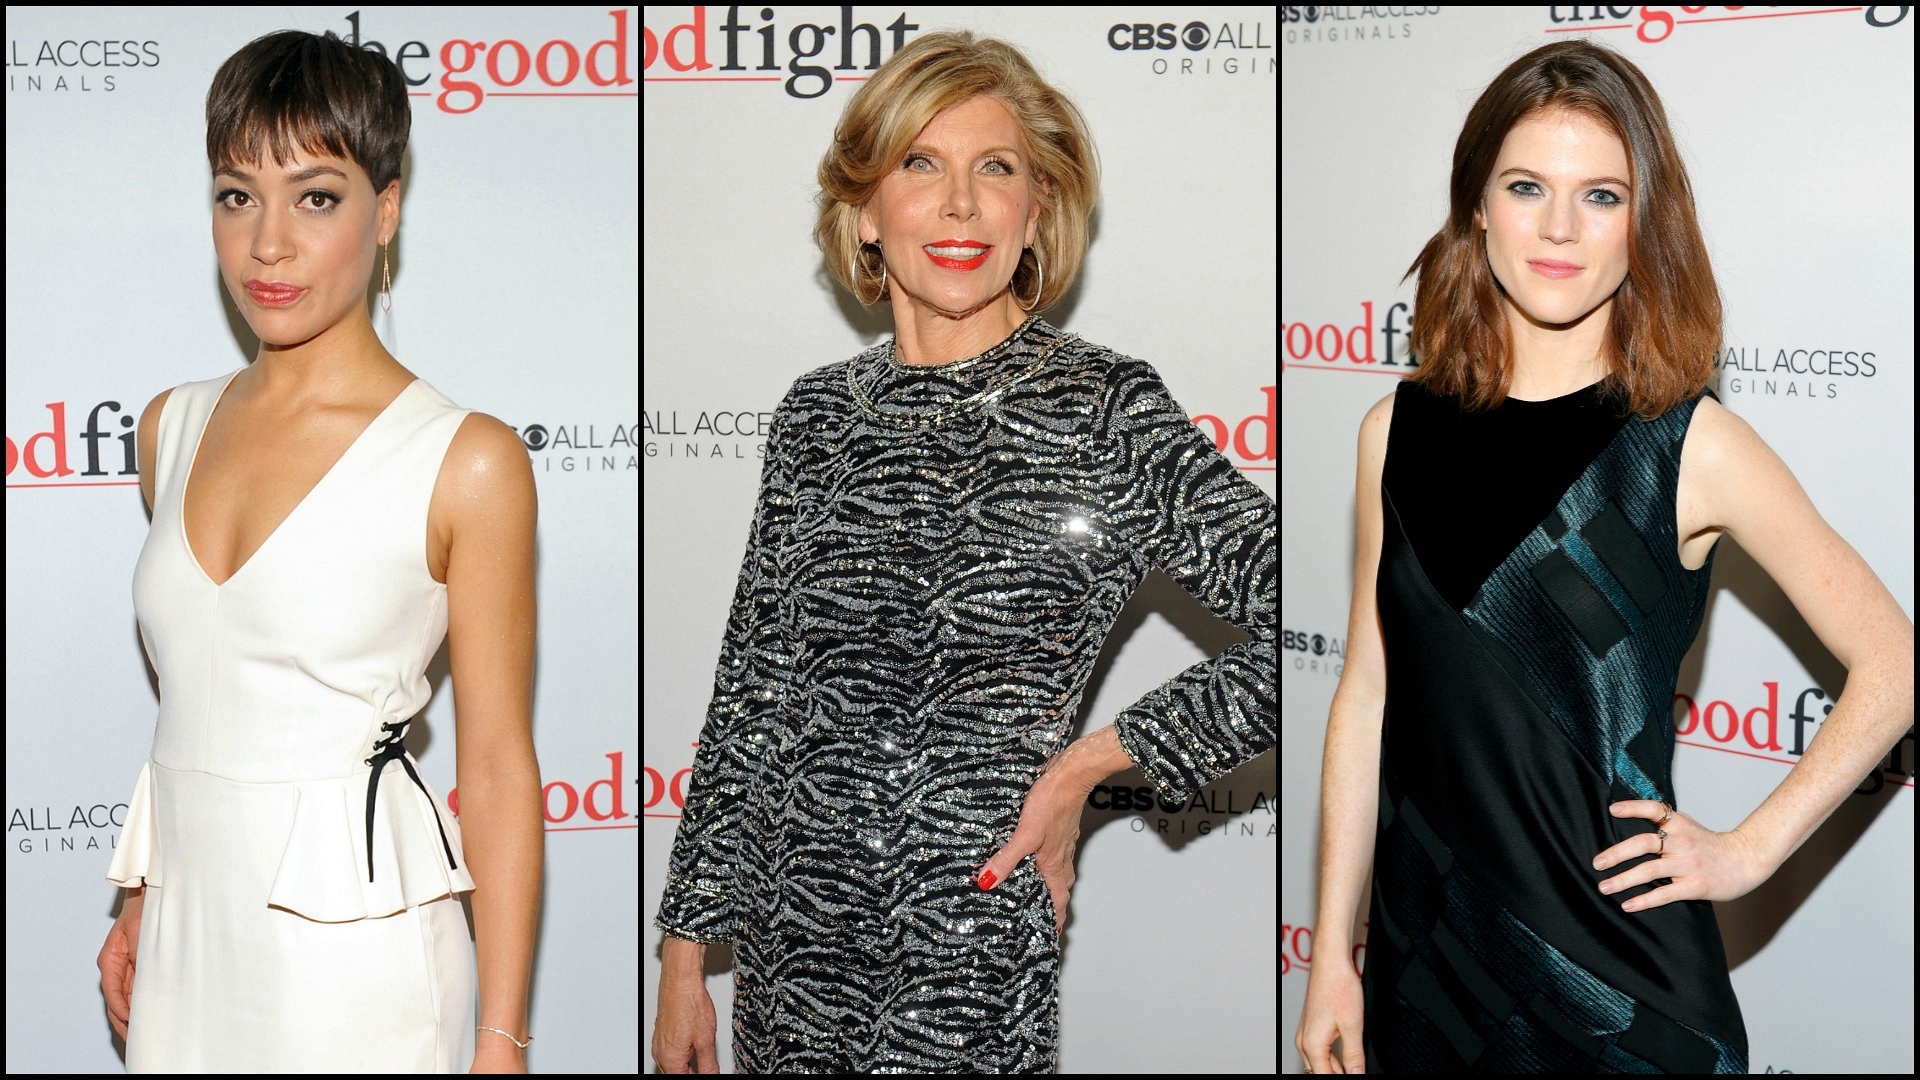 See The Good Fight stars' red carpet looks from the show's premiere.